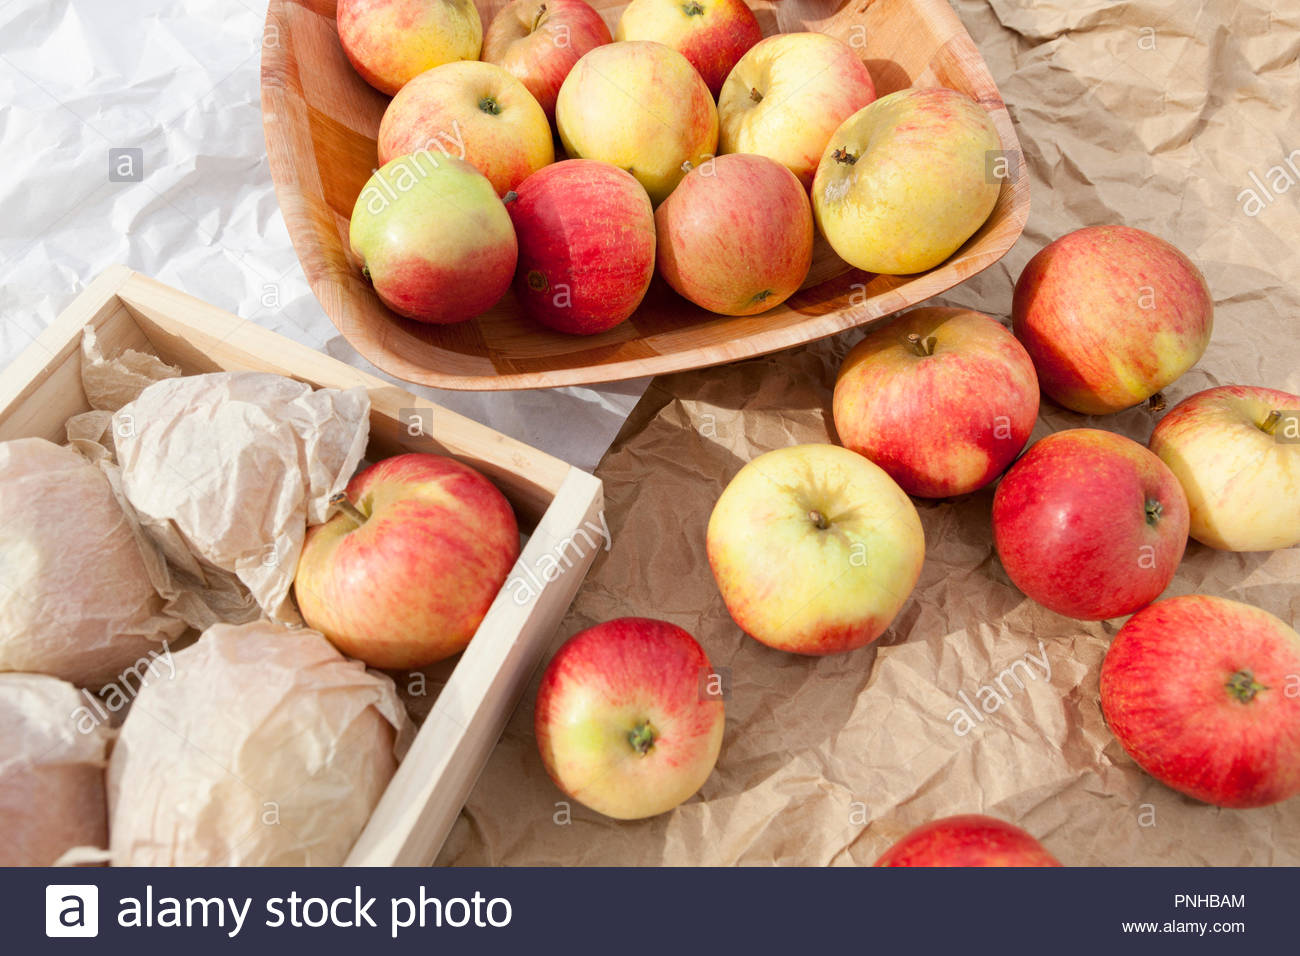 Apples being sorted for storing throughout the winter - Stock Image